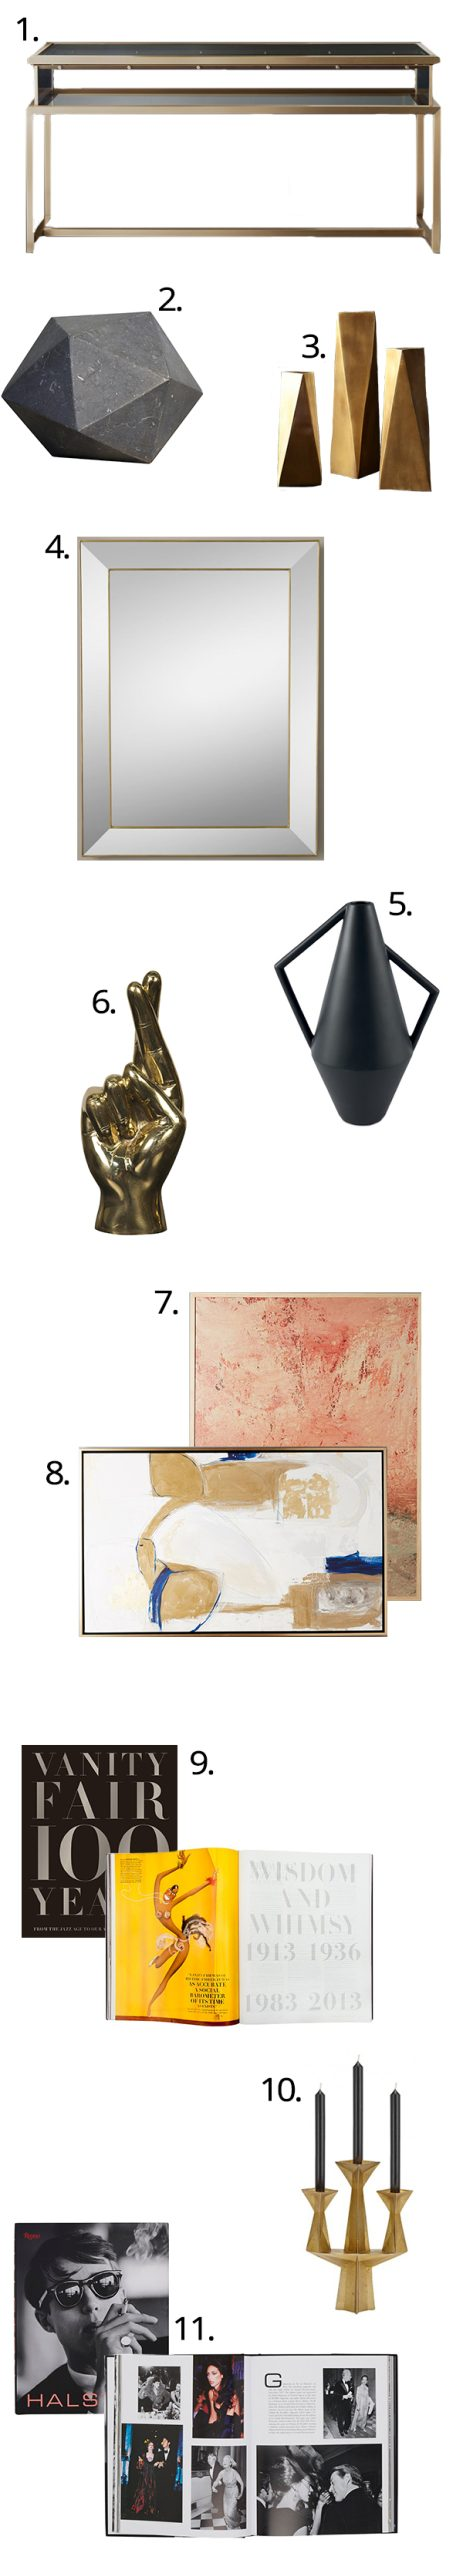 Style Guide to Accessorizing Your Home